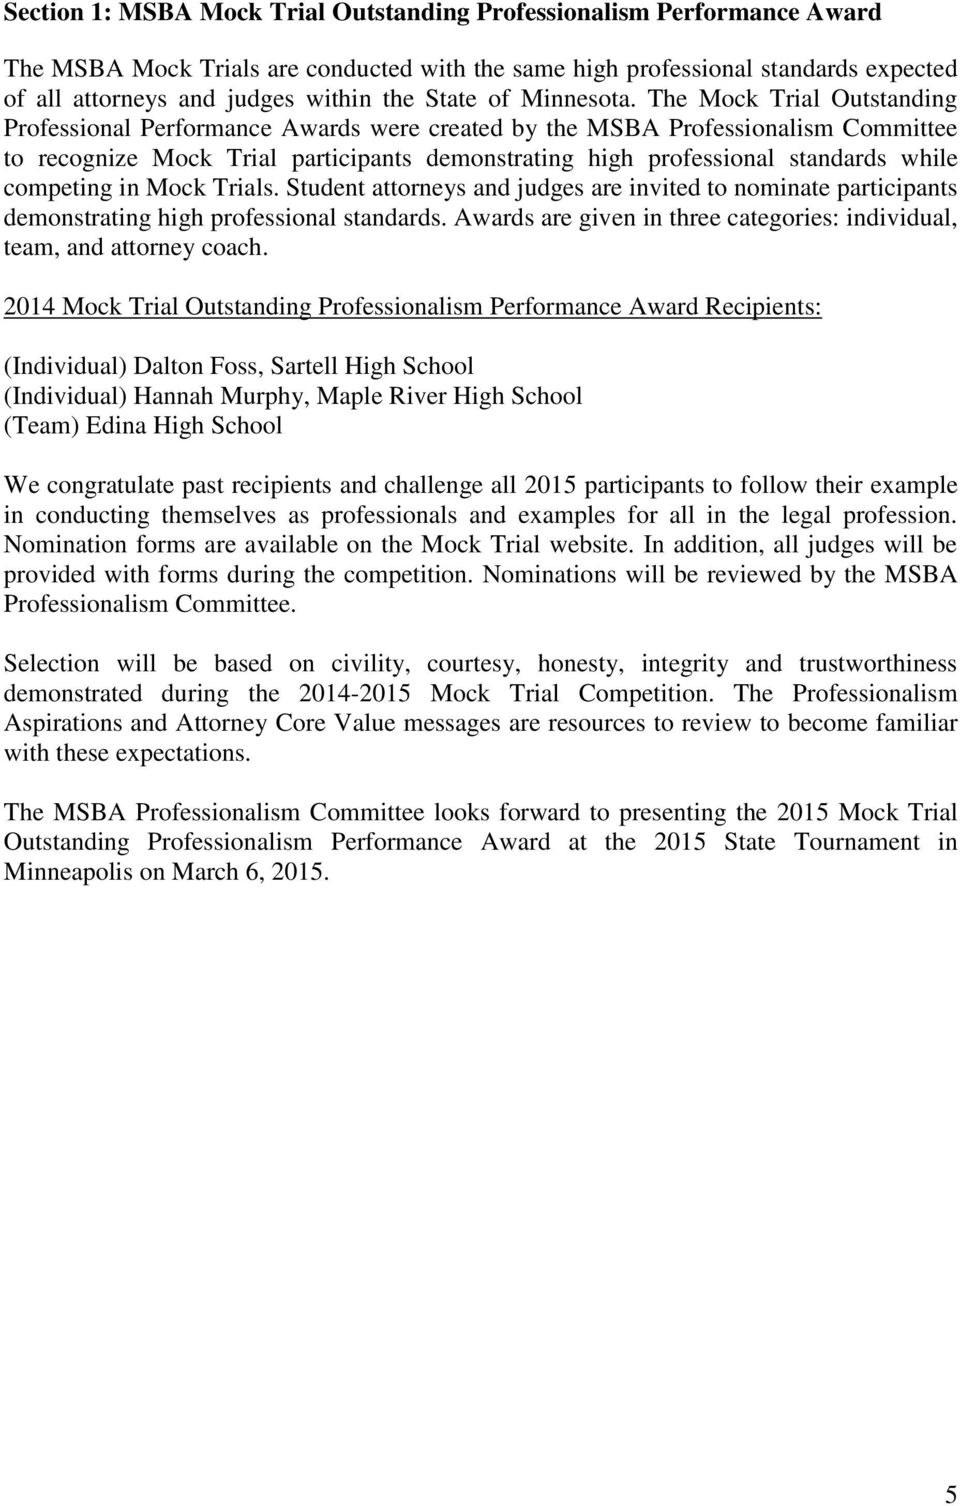 The Mock Trial Outstanding Professional Performance Awards were created by the MSBA Professionalism Committee to recognize Mock Trial participants demonstrating high professional standards while